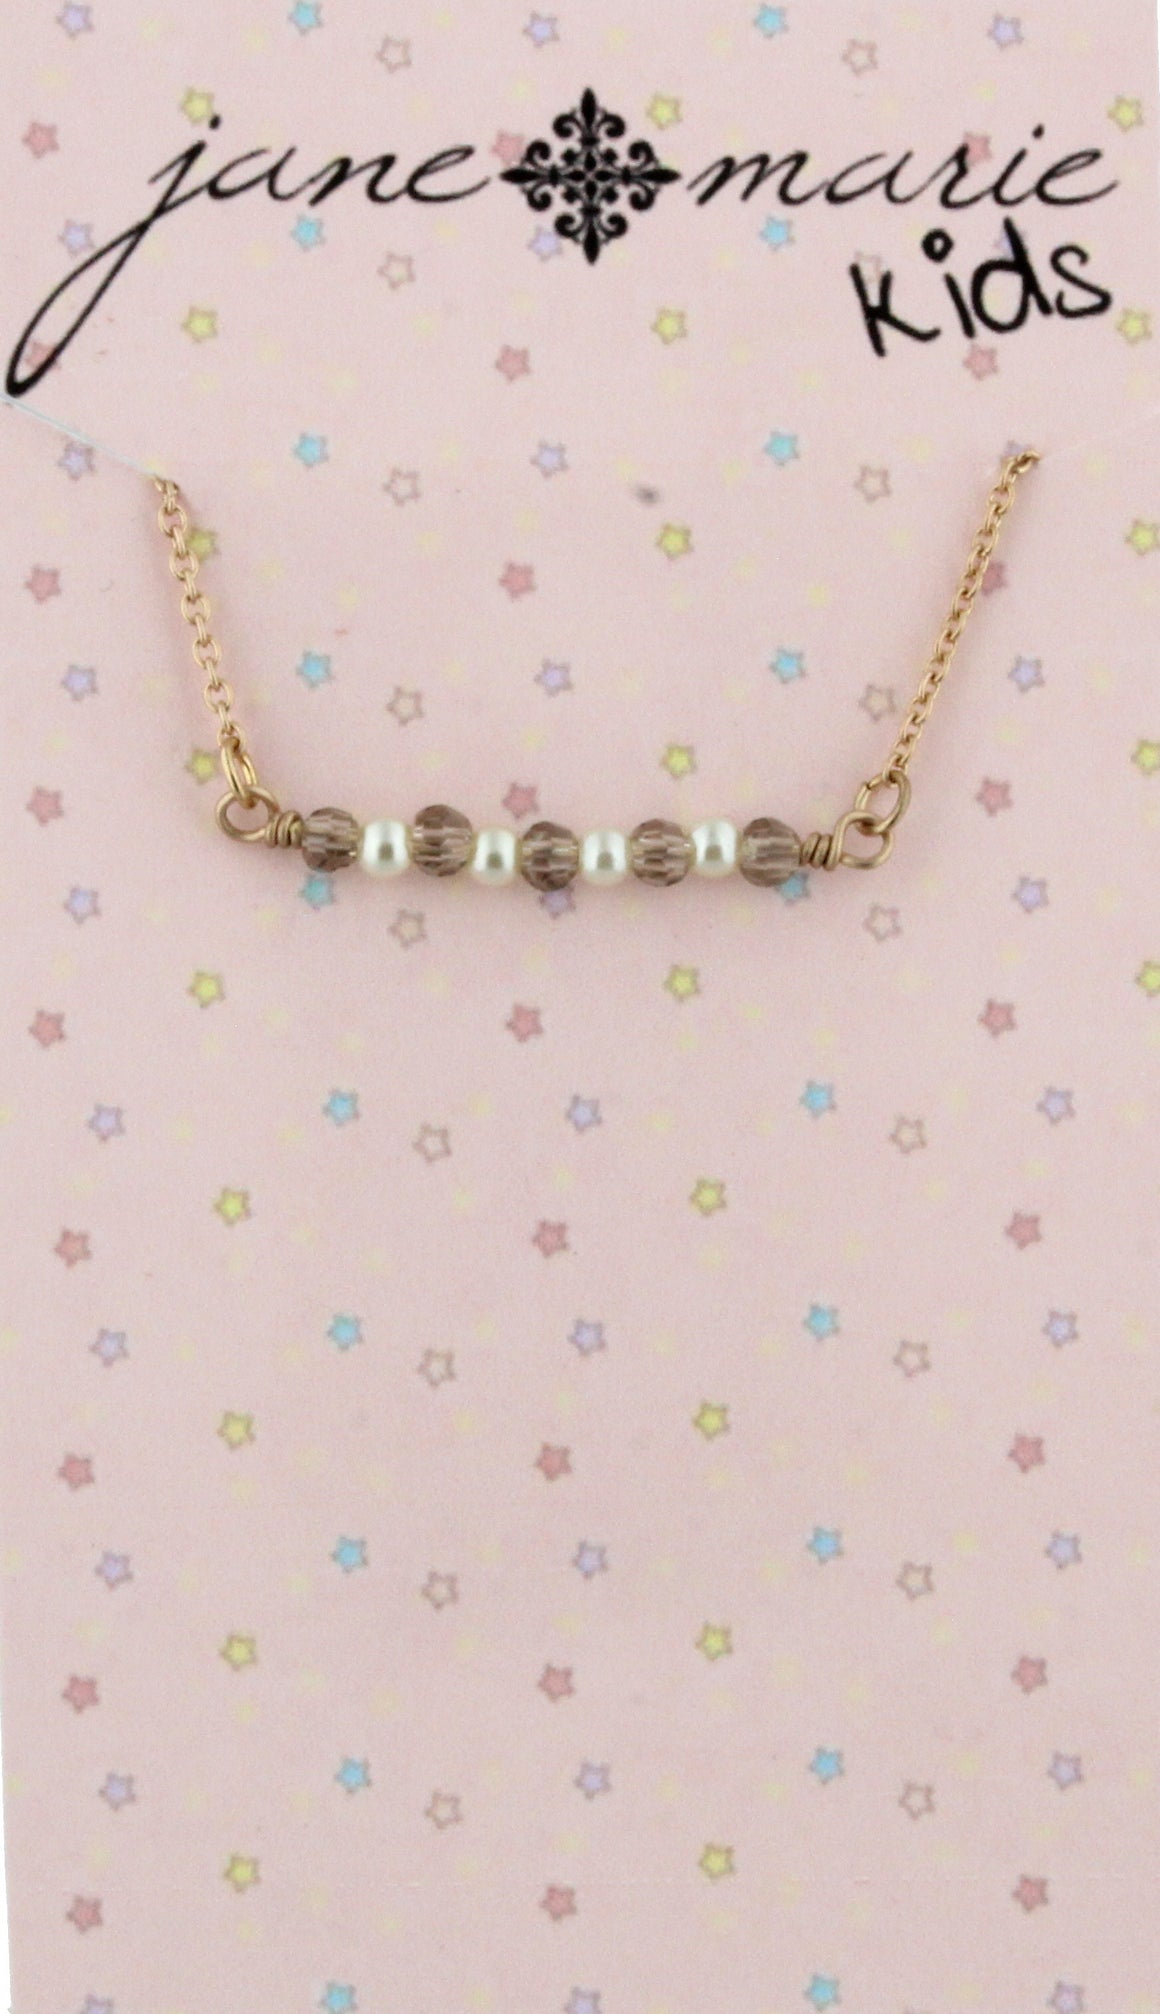 Beads and Pearls Bar Necklace